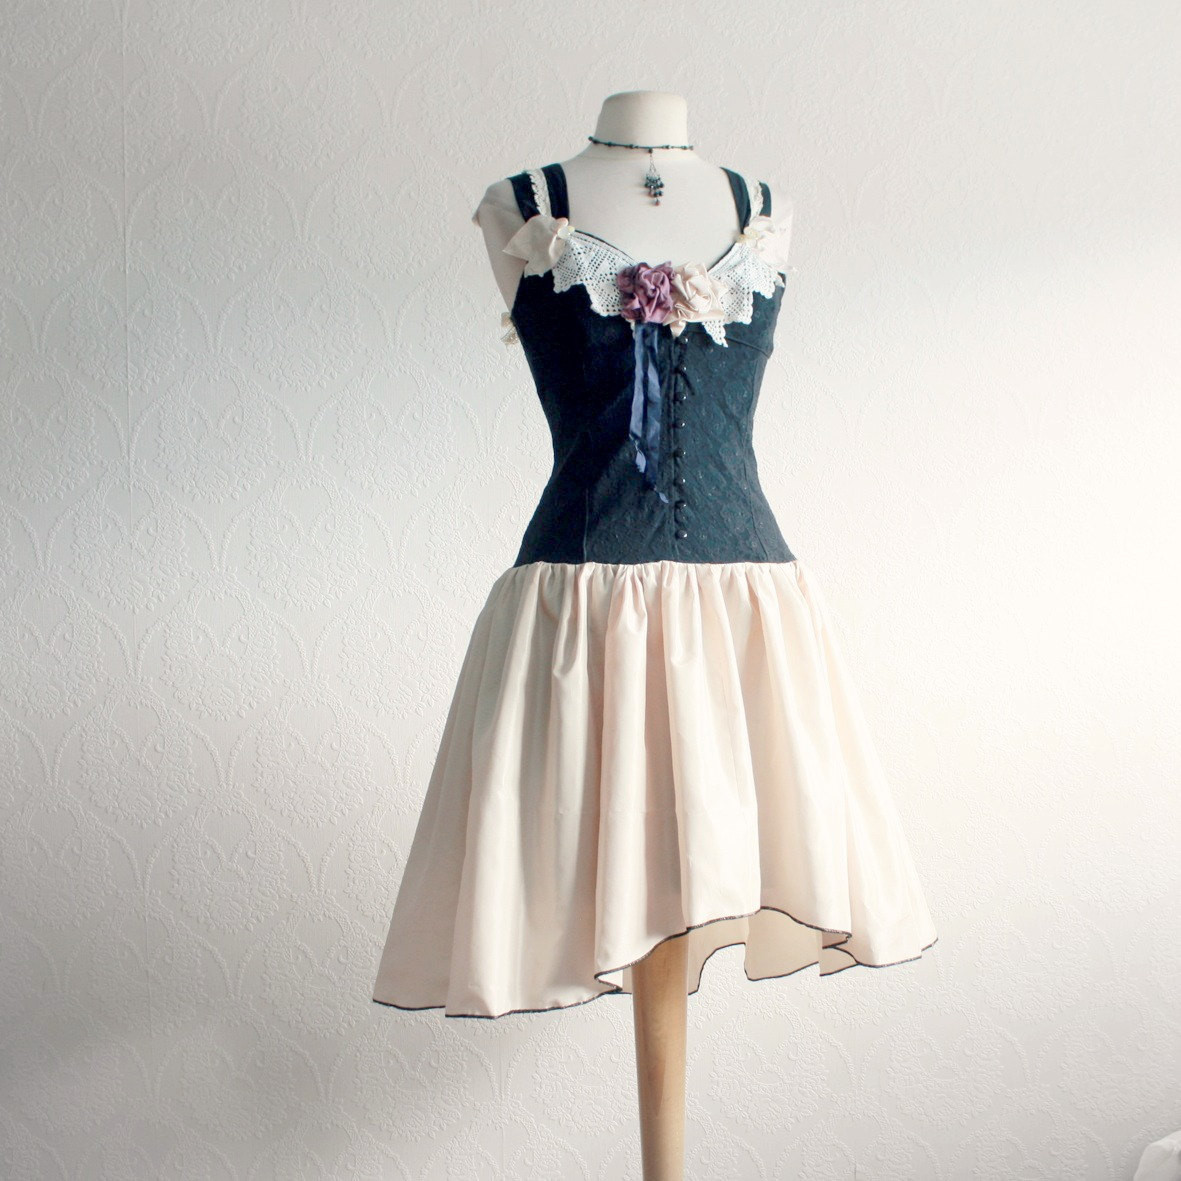 Best ideas about Shabby Chic Clothing . Save or Pin Shabby Chic Clothing Black and Cream Dress Vintage Lace Now.